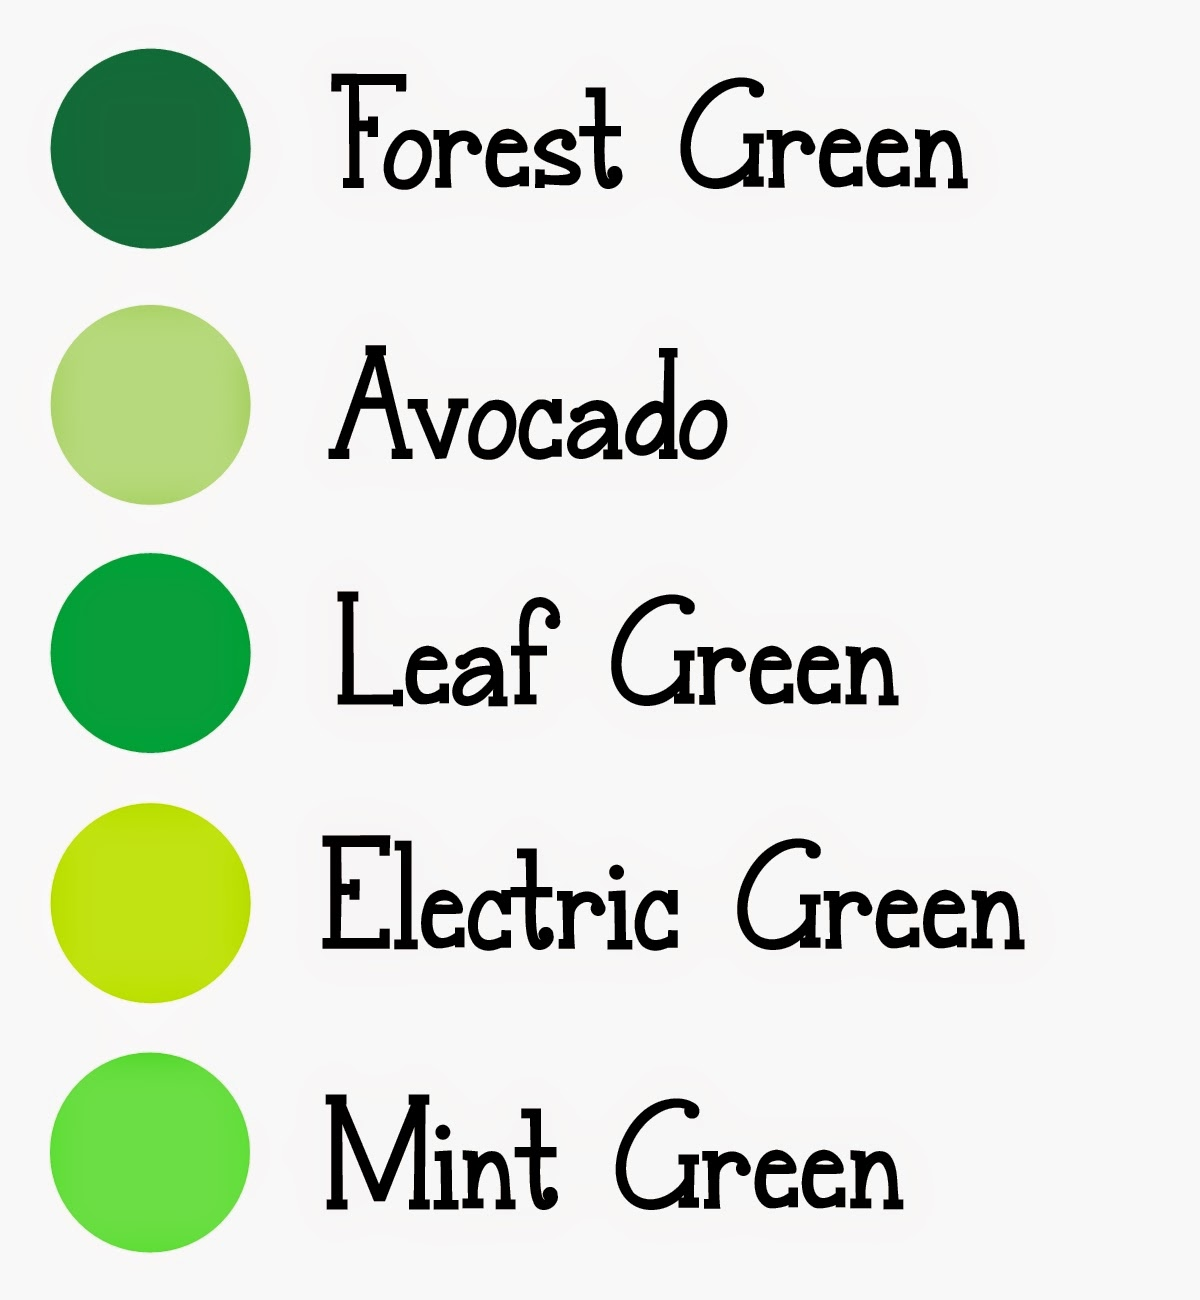 Icing Color Theory and a Color Chart | LilaLoa: Icing Color Theory ...